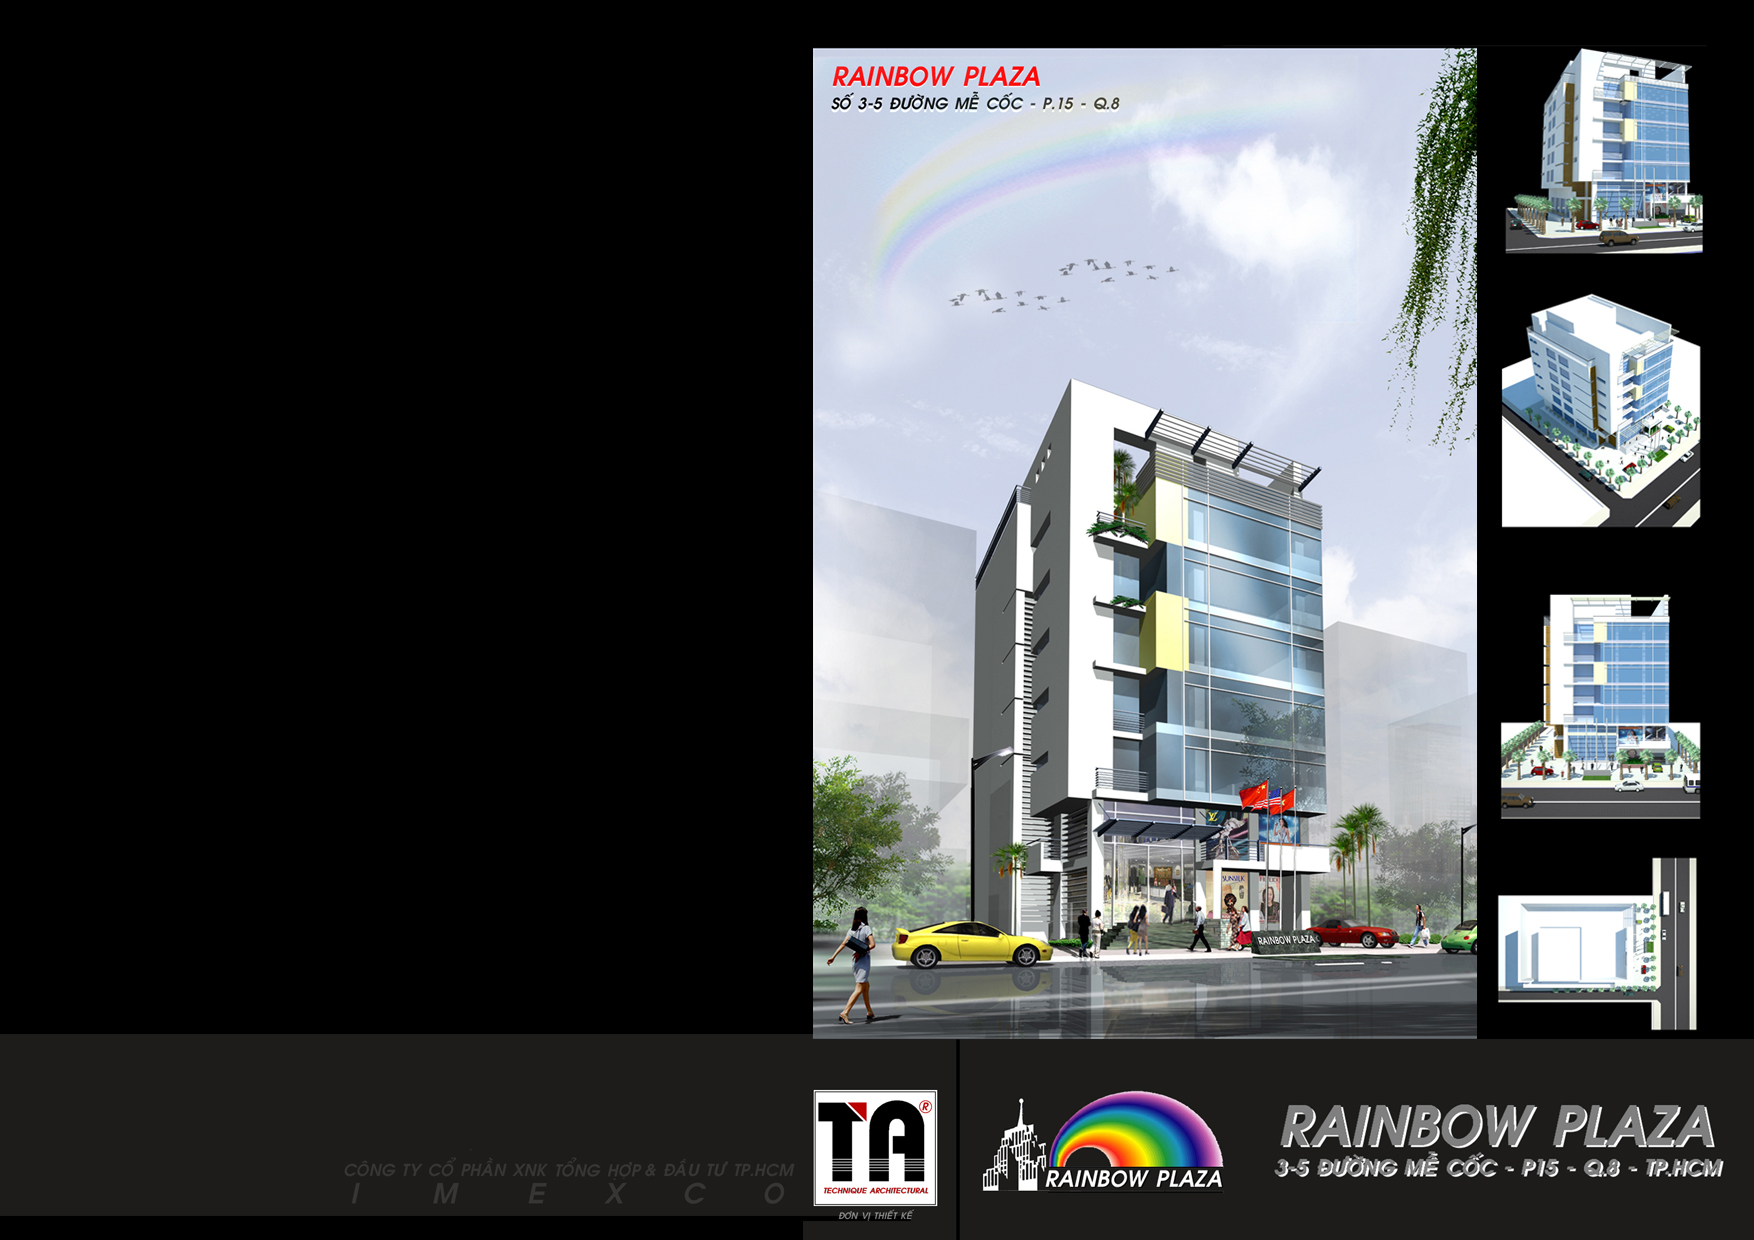 You are browsing images from the article: HÌNH ẢNH CHI TIẾT RAINBOW PLAZA